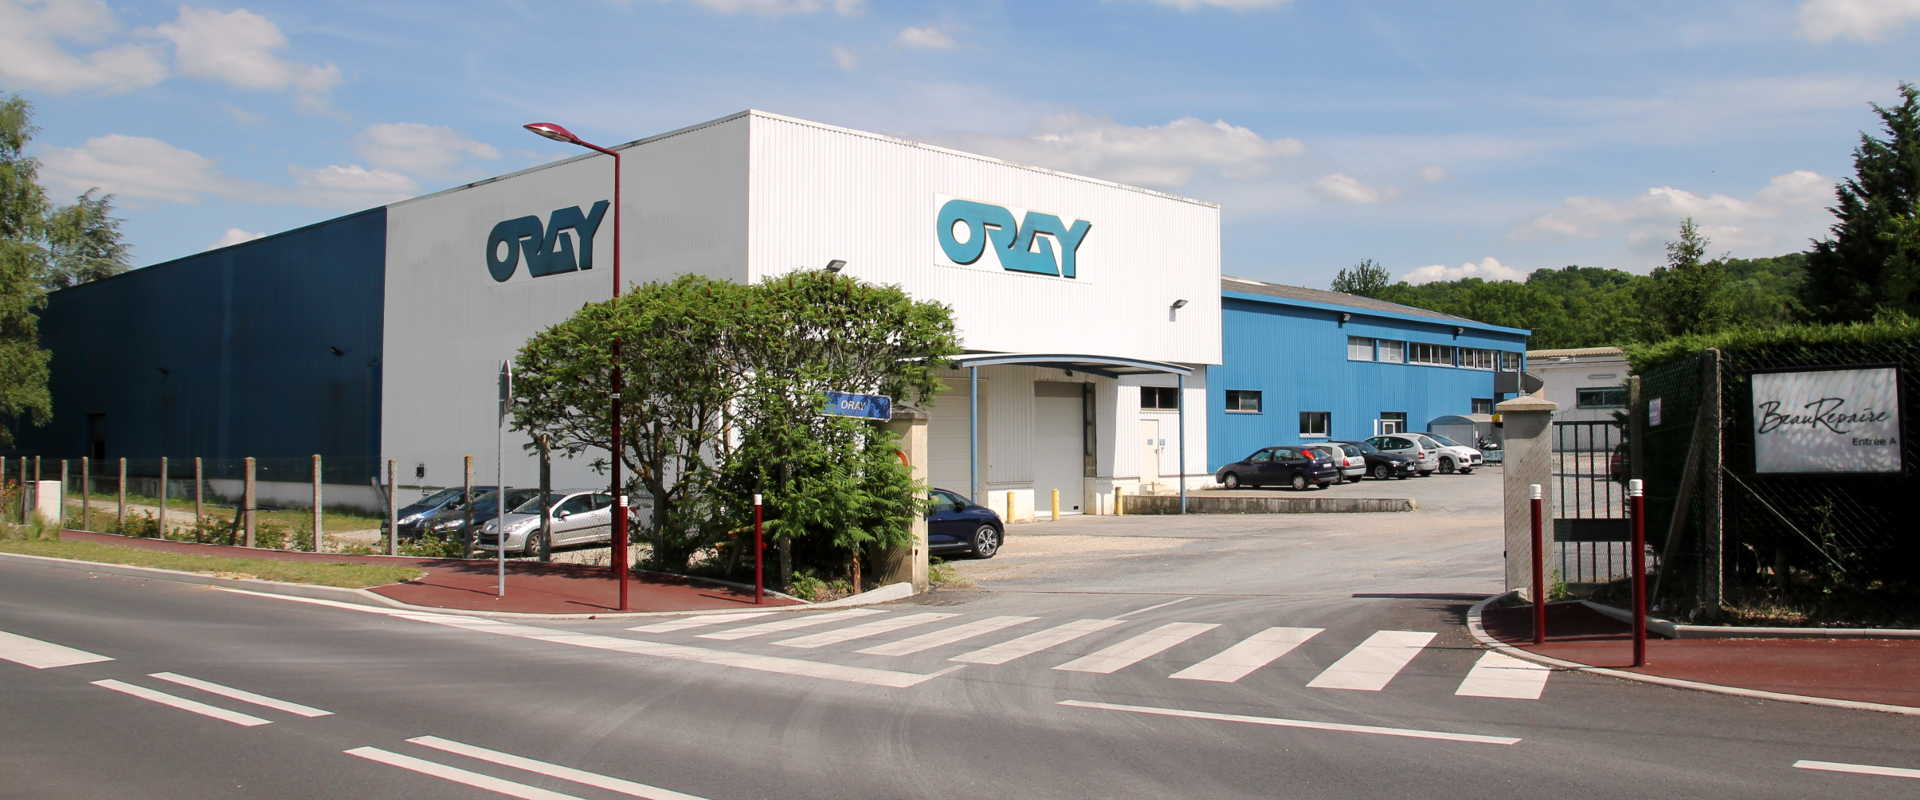 ORAY Construction